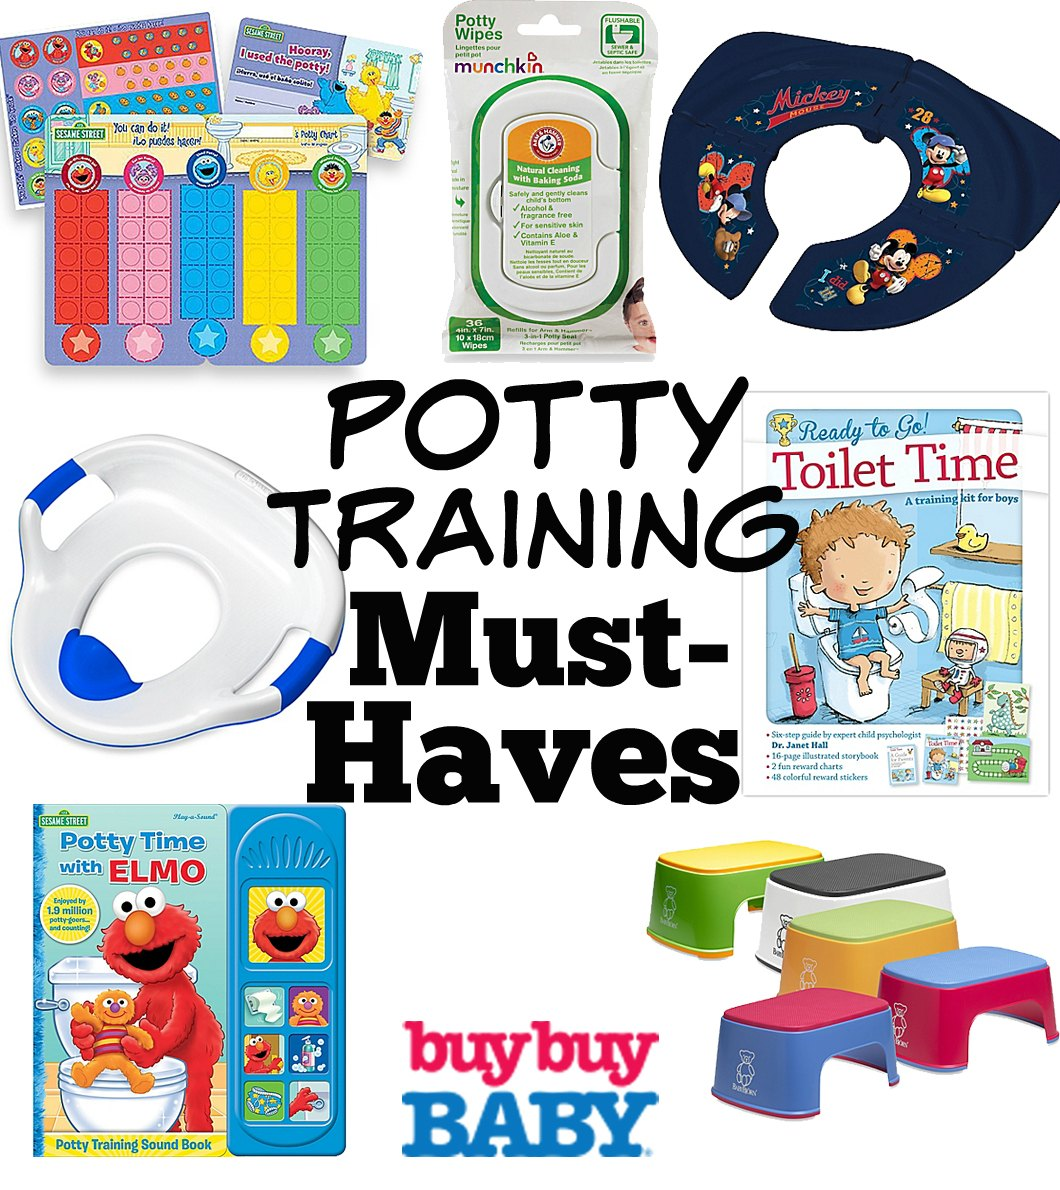 potty training must-haves